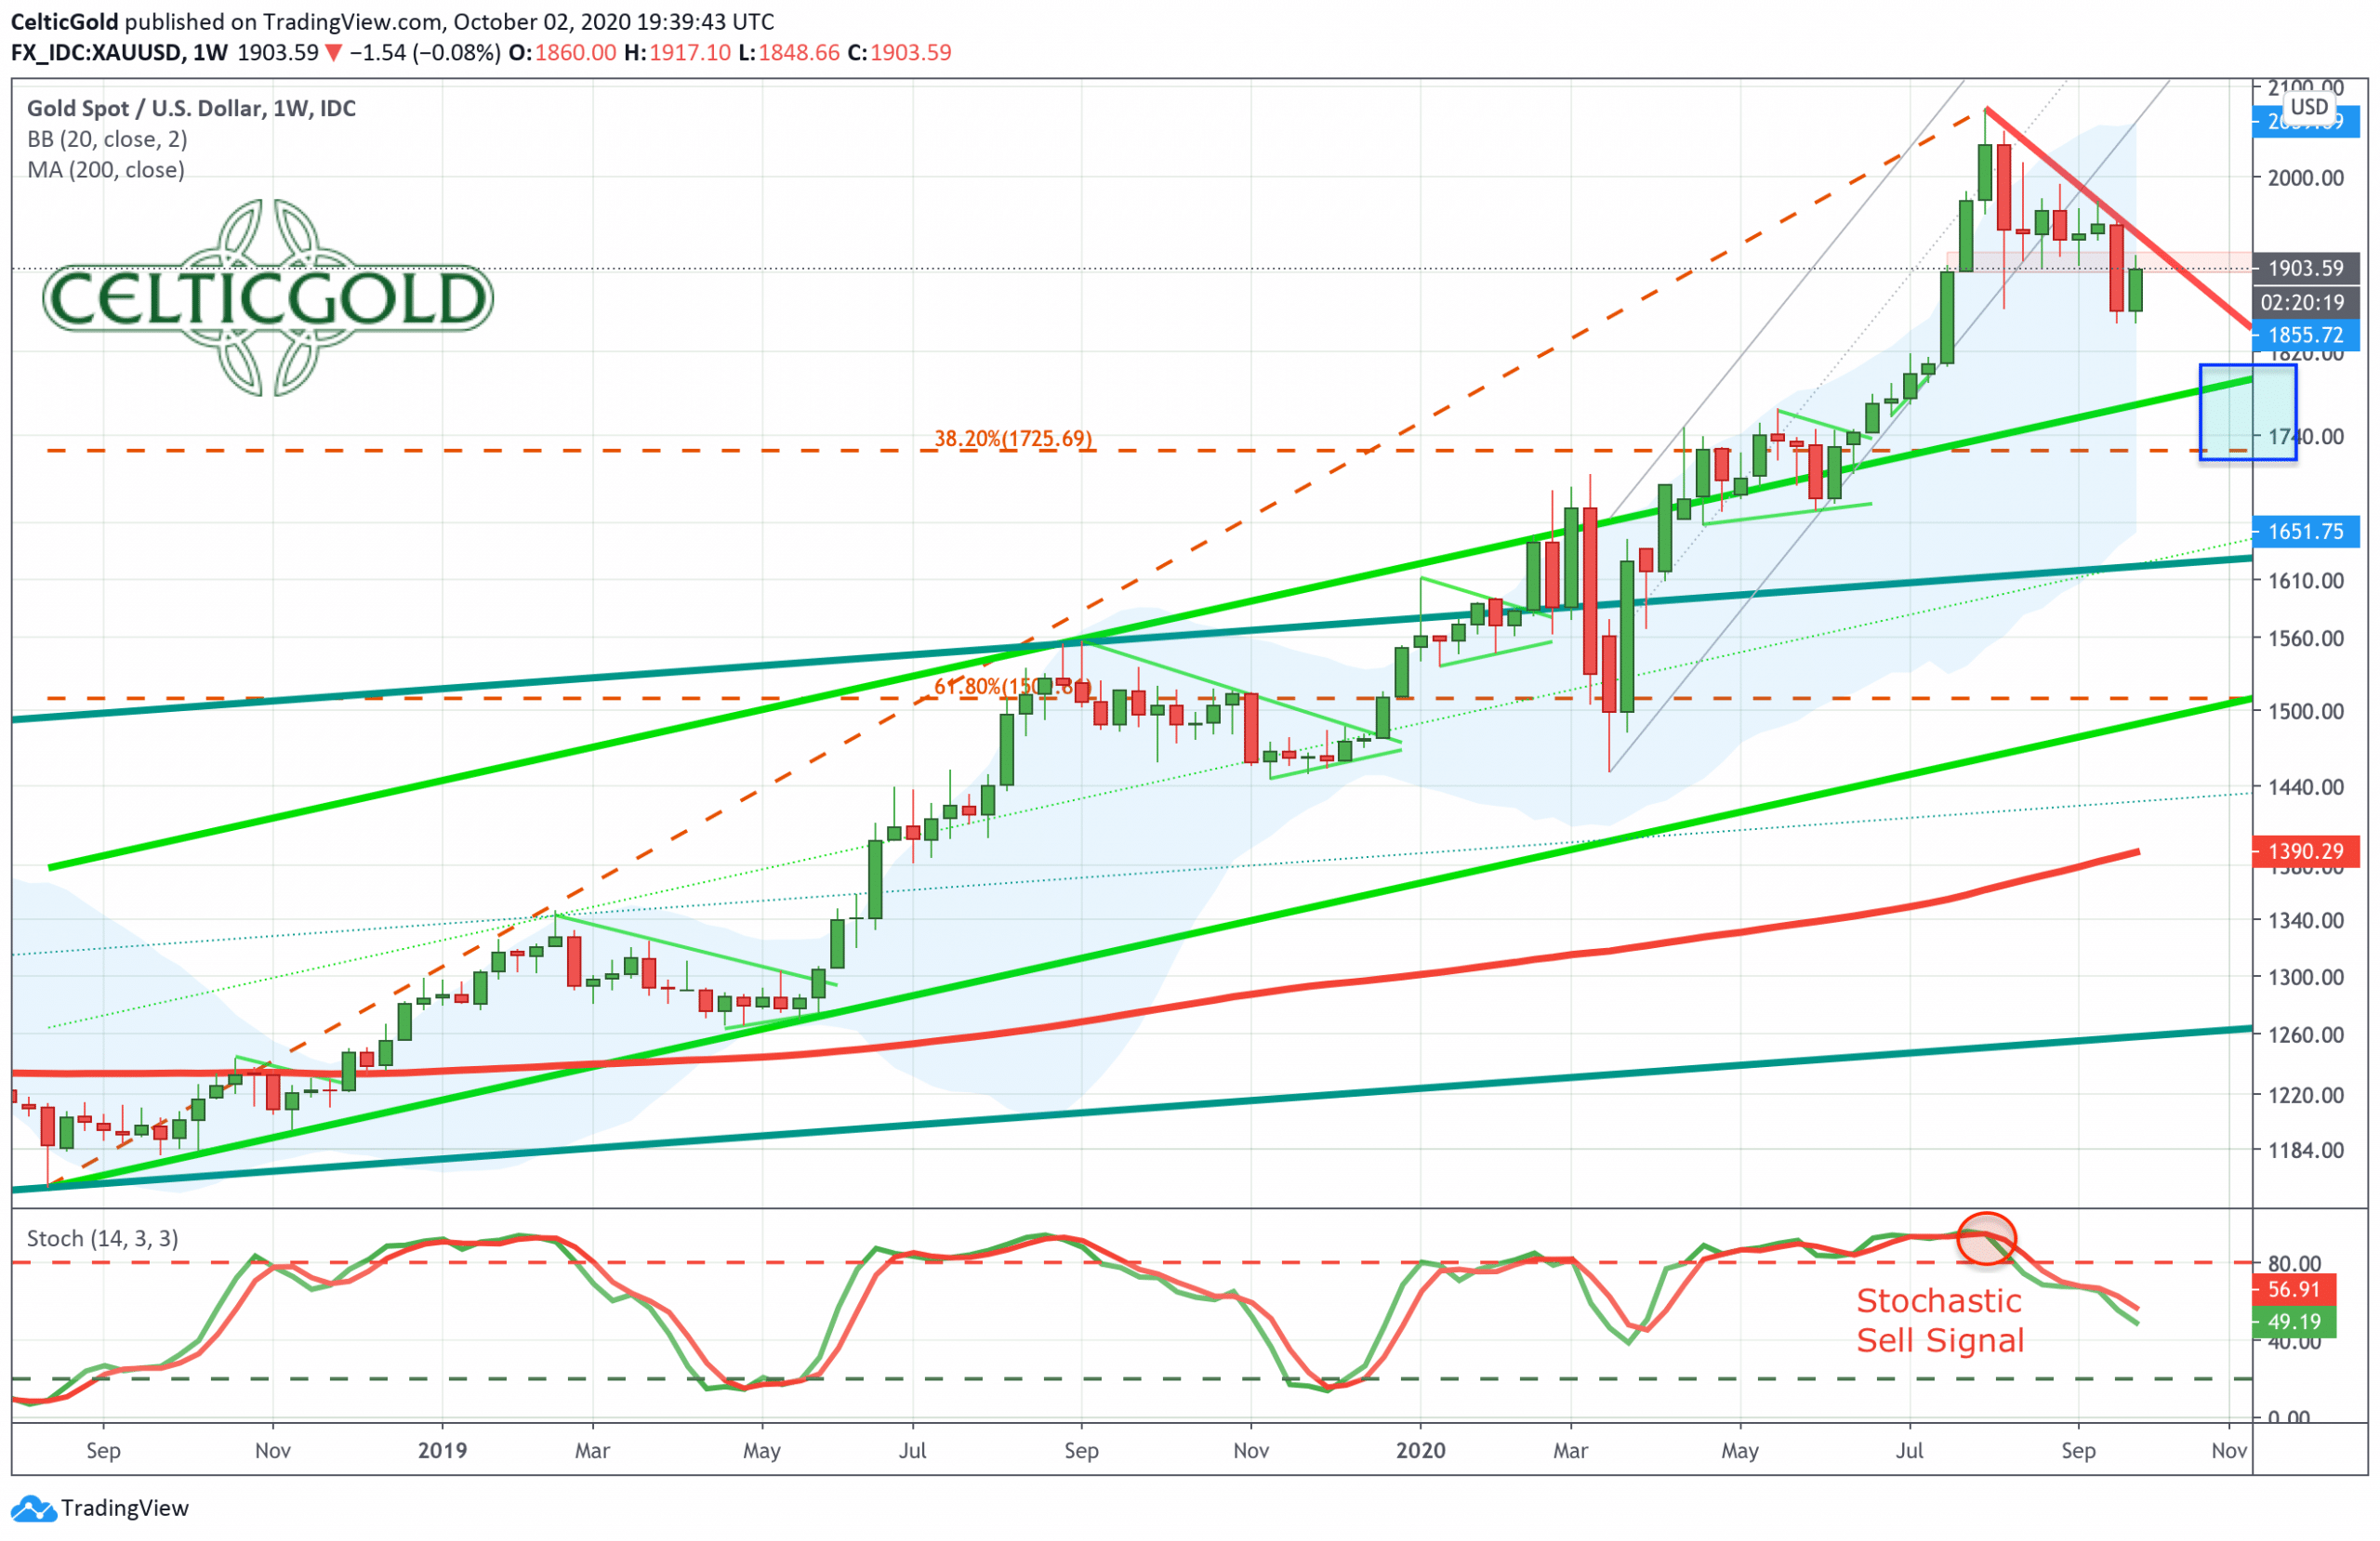 Gold in US-Dollars, weekly chart as of October 2nd, 2020. Source: Tradingview